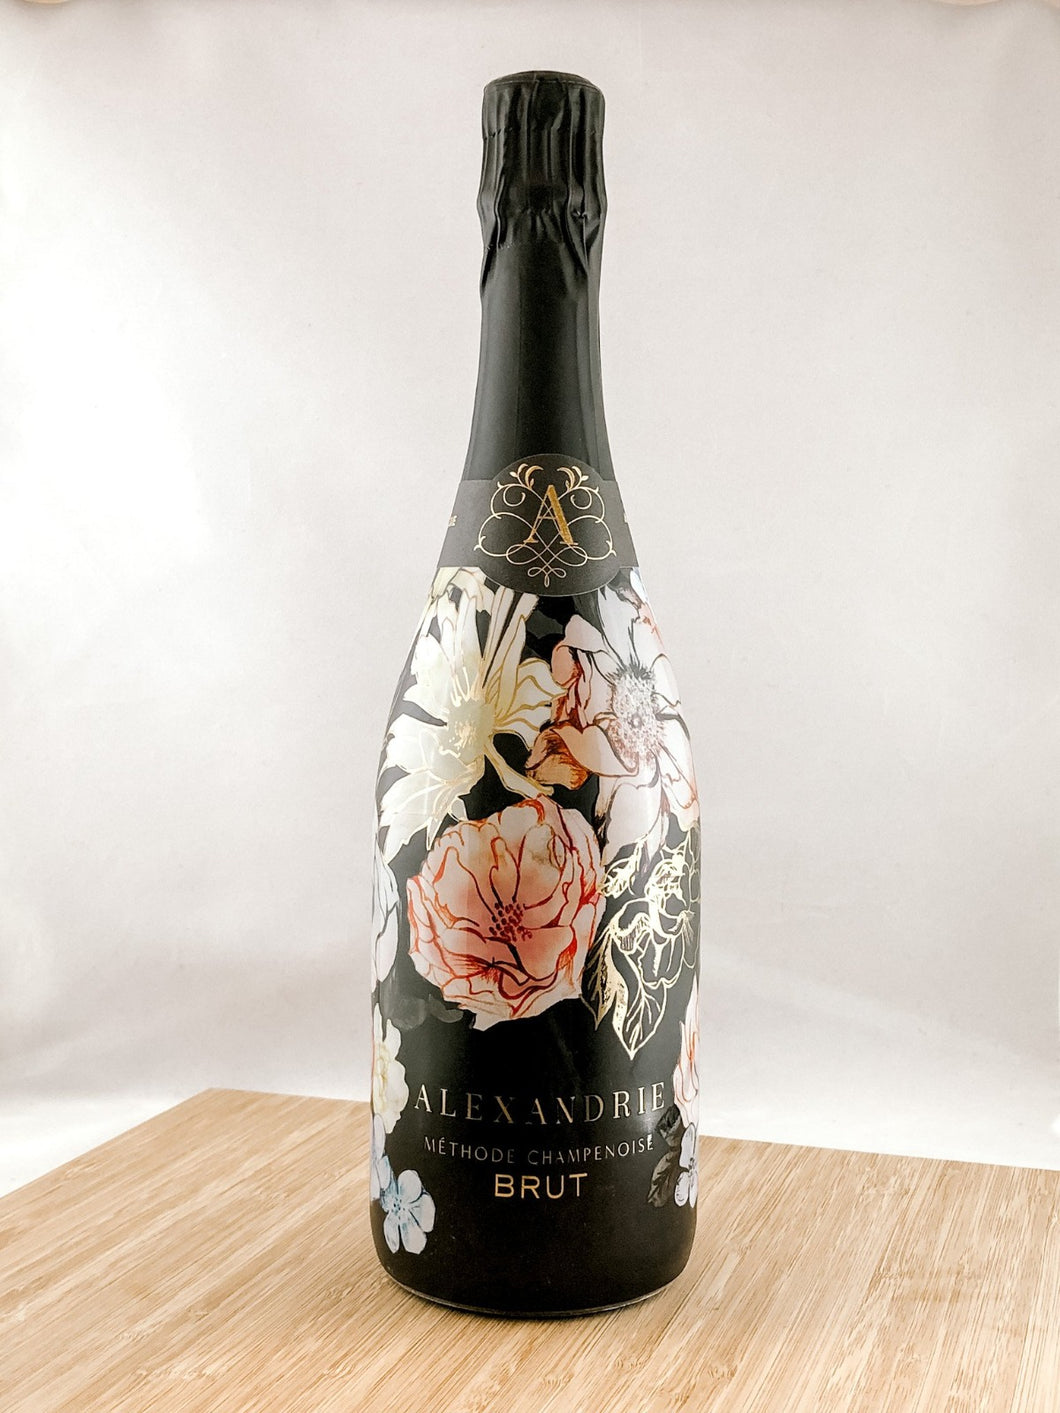 Alexandrie Cellars Brut, part of our champagne delivery and great for unique corporate gift ideas.